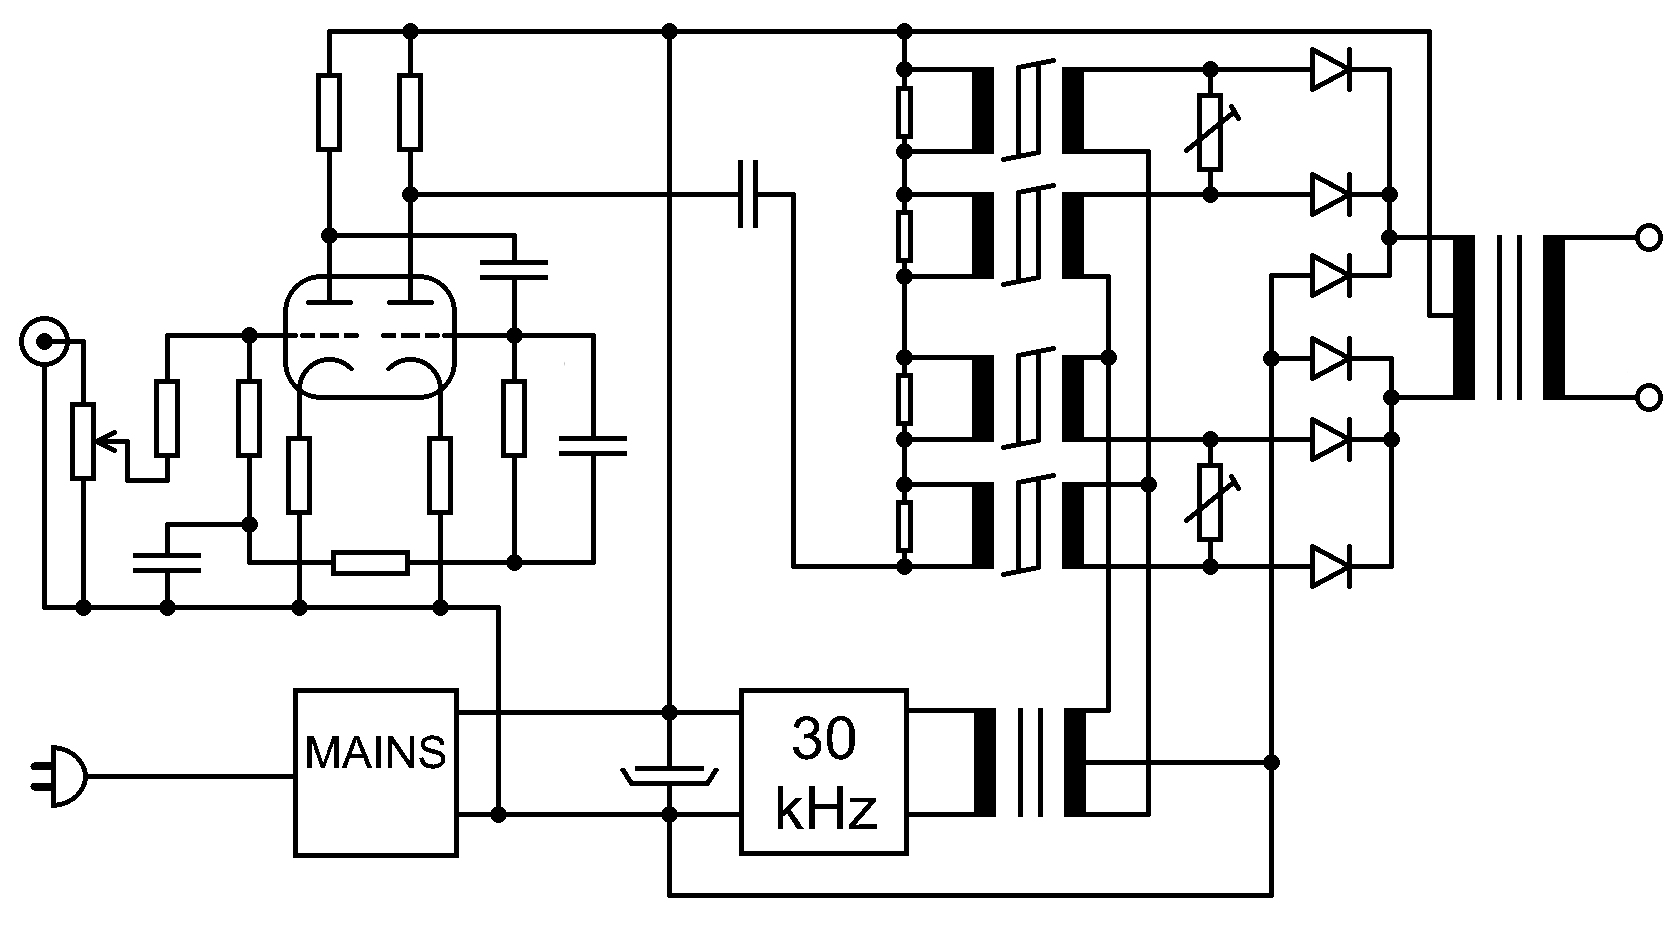 file lundahl magamp schematic without reference